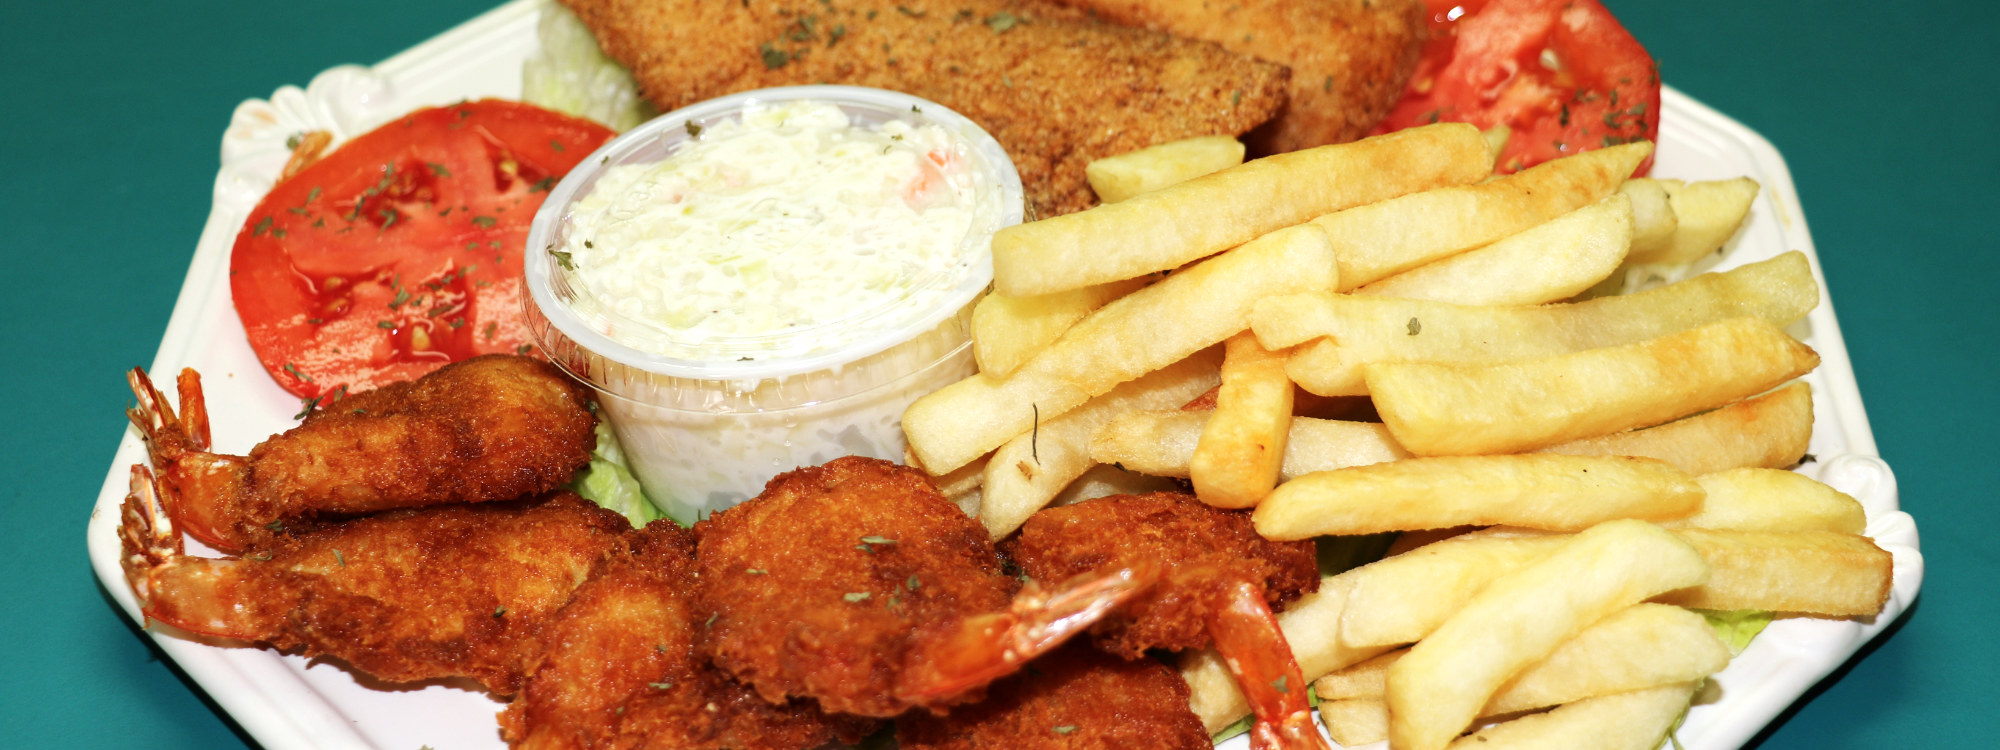 coconut shrimp with fish, fries, and tomato